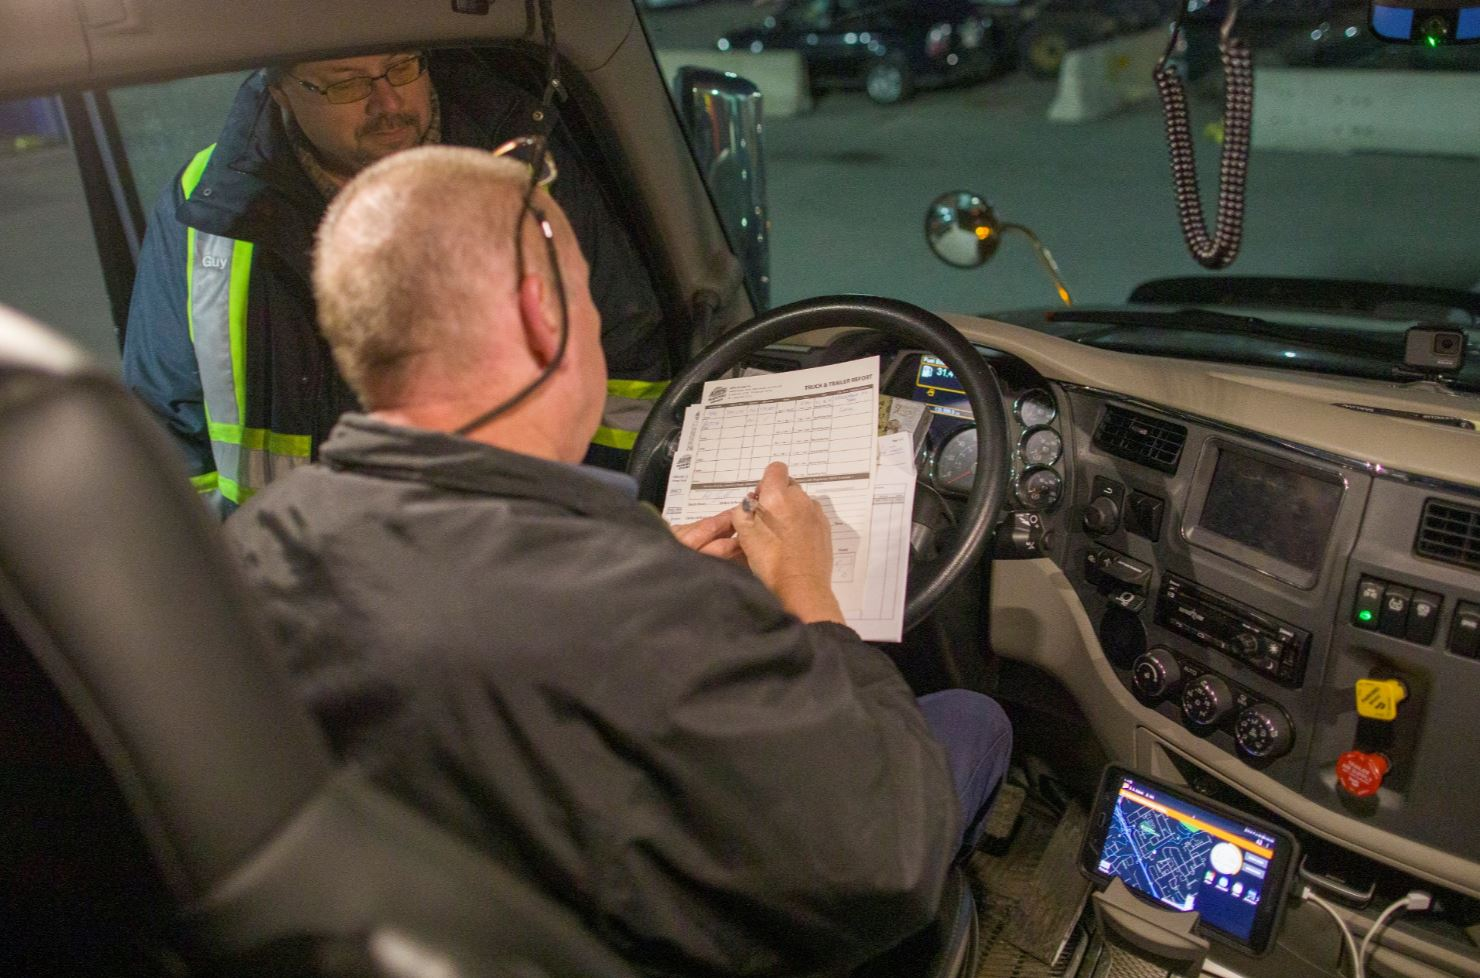 Truck driver filling out paper work.